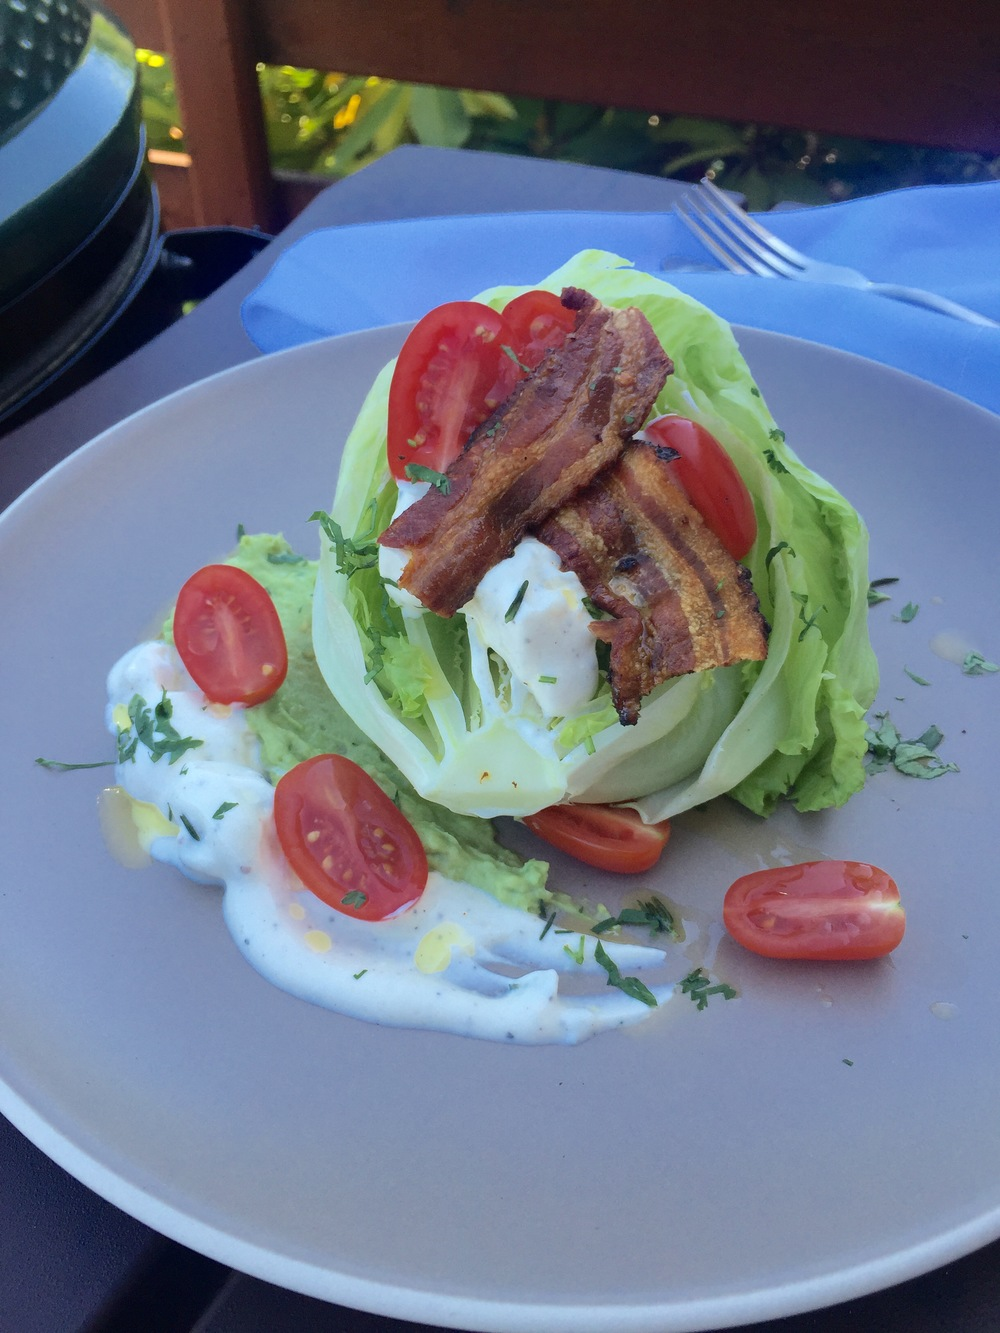 Bacon, Lettuce, Tomato Summer Salad with Blue Cheese Dressing and Avocado Mousse